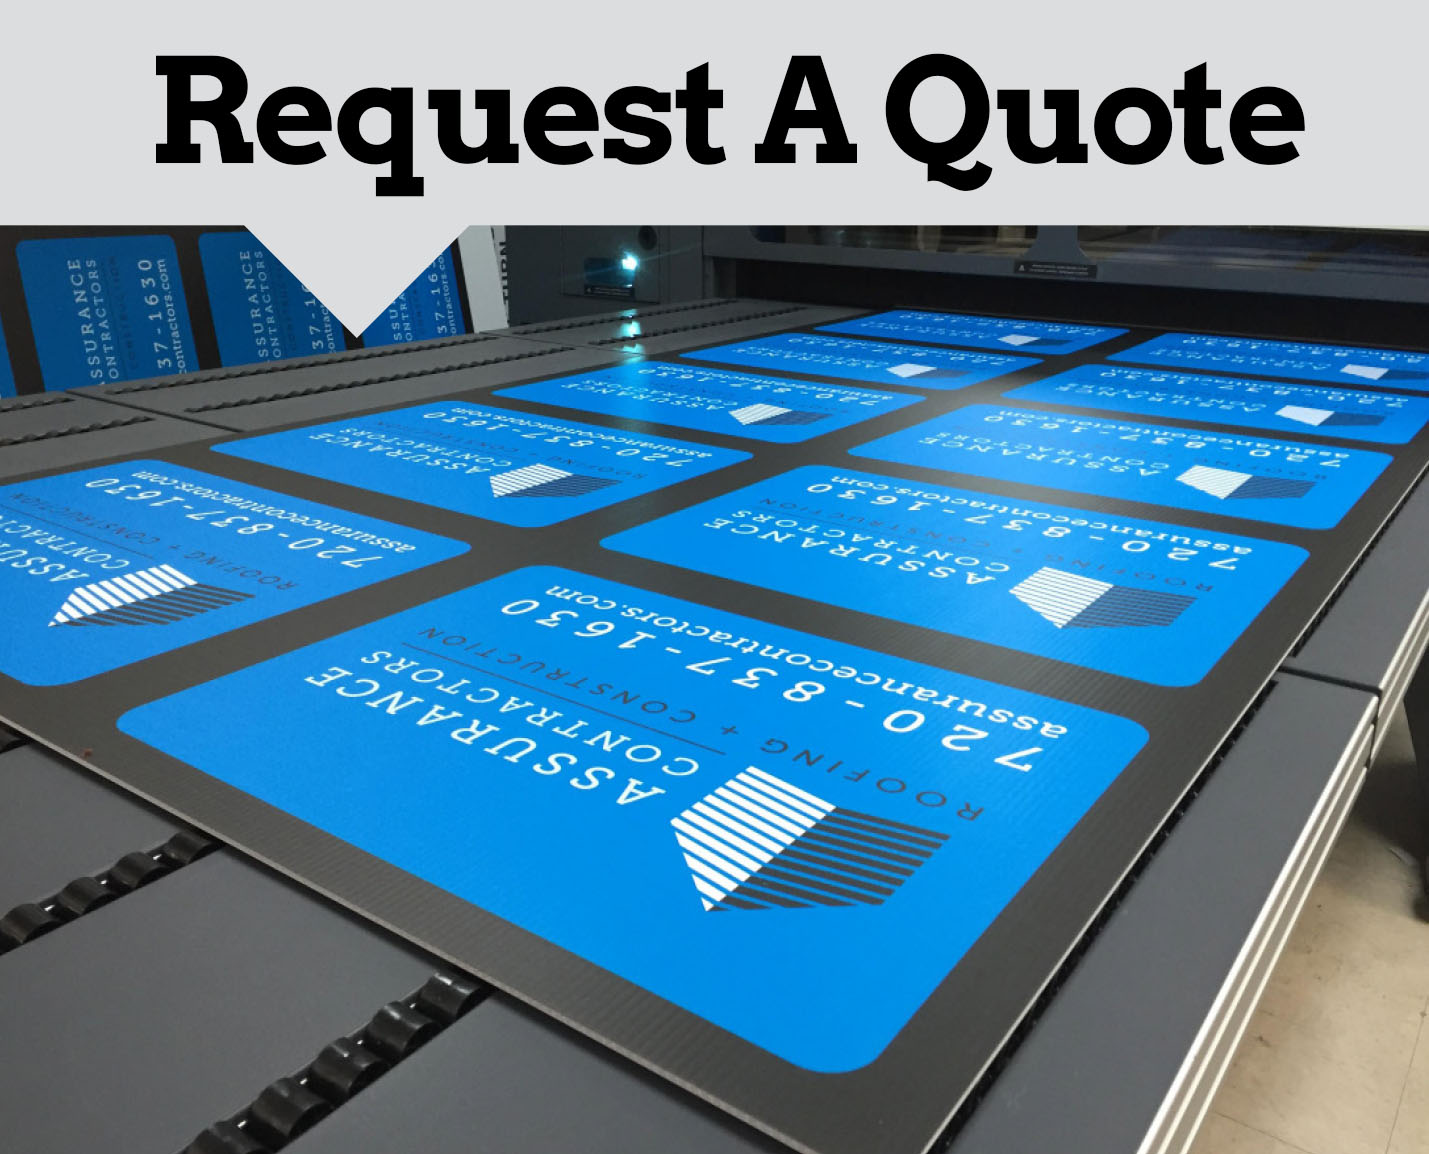 Request a Quote for Printing and Marketing Services